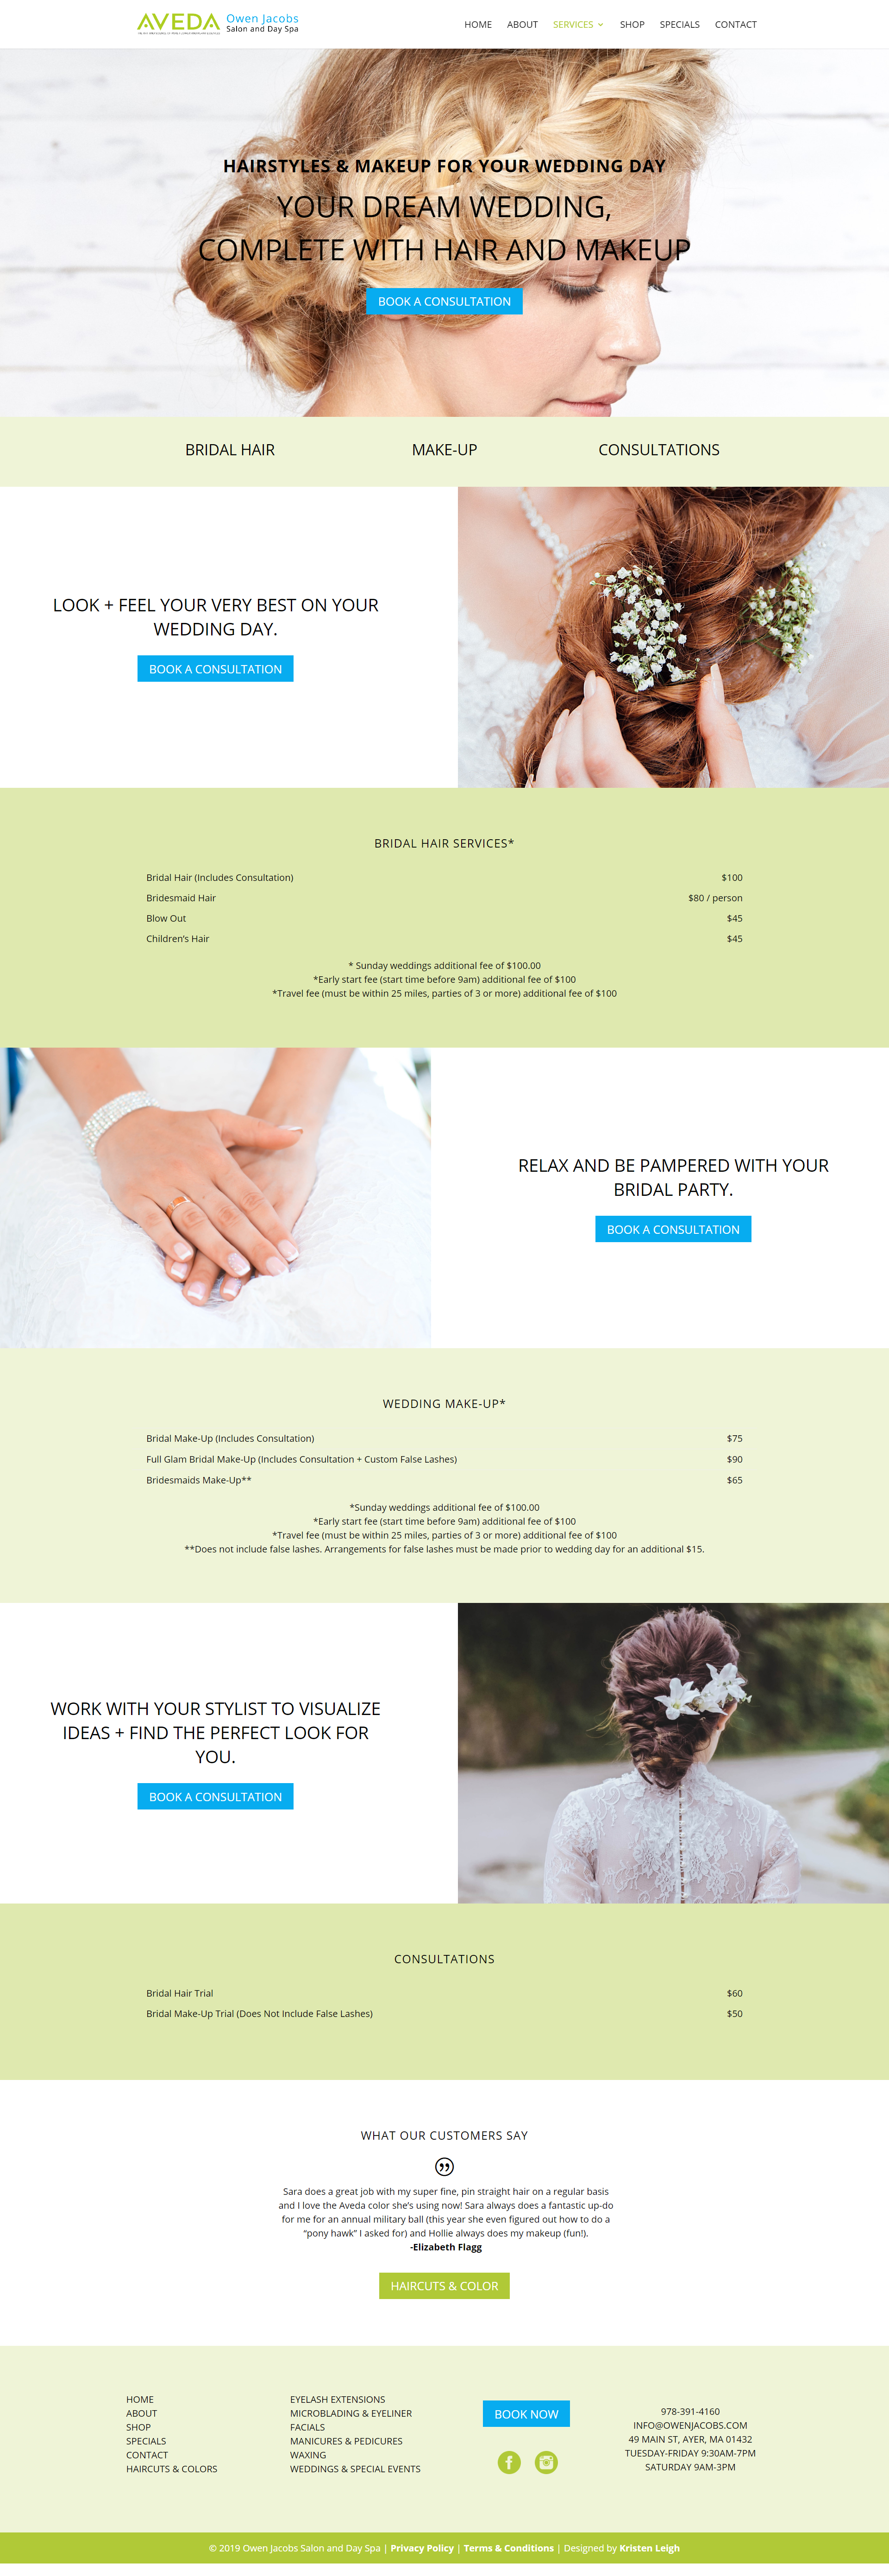 Kristen Leigh | WordPress Web Design Studio | Owen Jacobs Salon and Day Spa Portfolio Piece | Weddings and Special Occasions